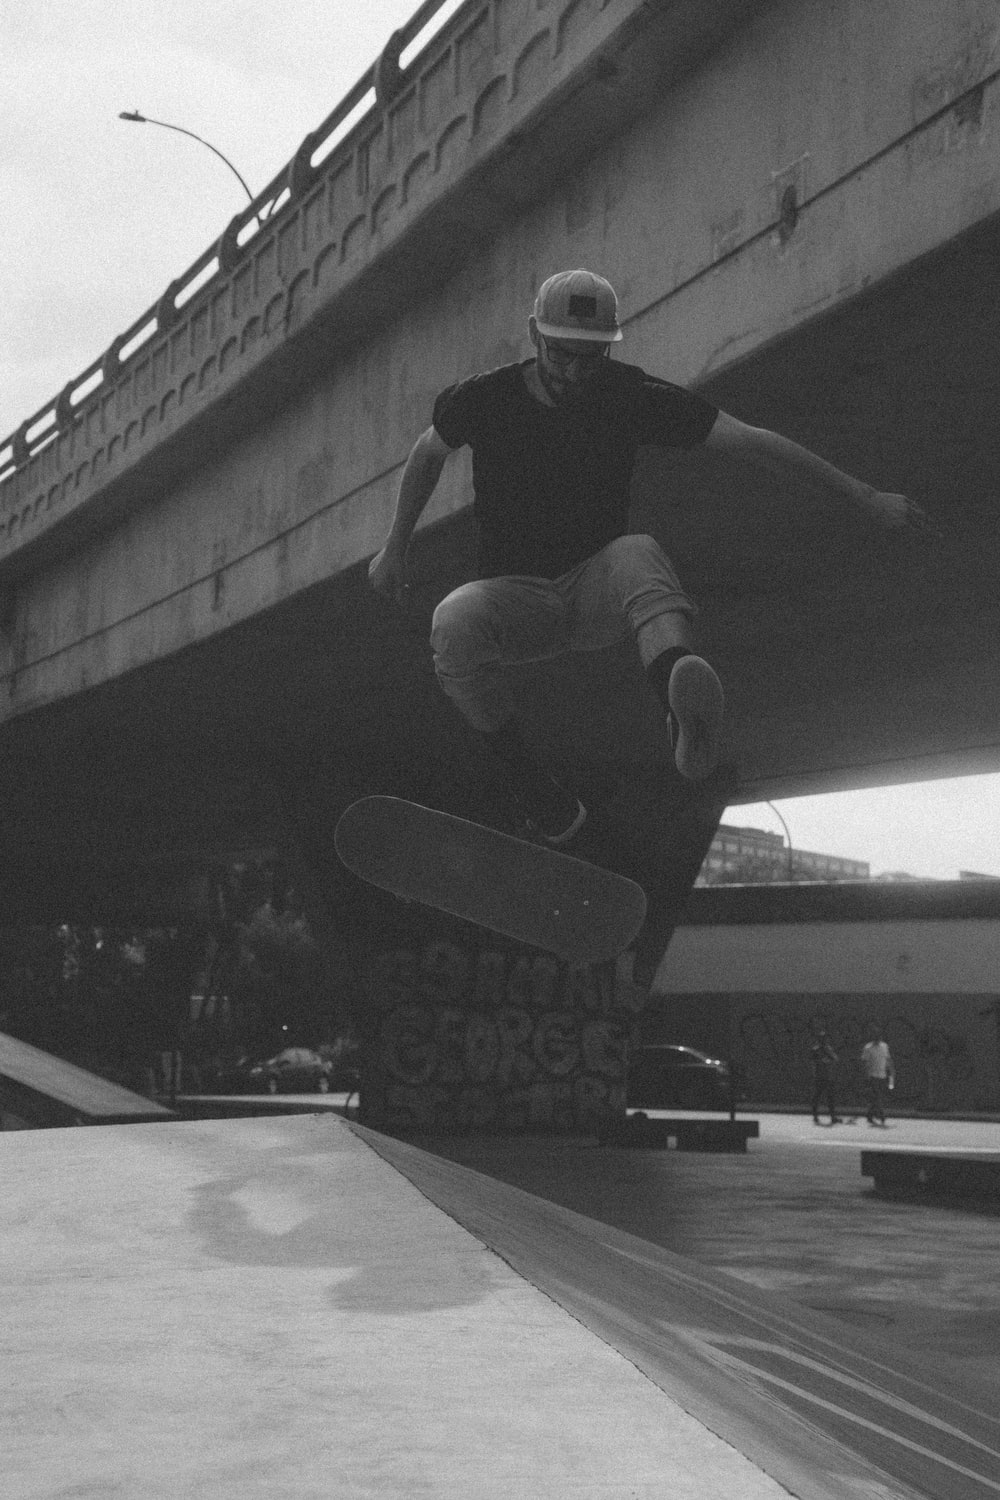 greyscale photograph of man doing tricks while riding skateboard